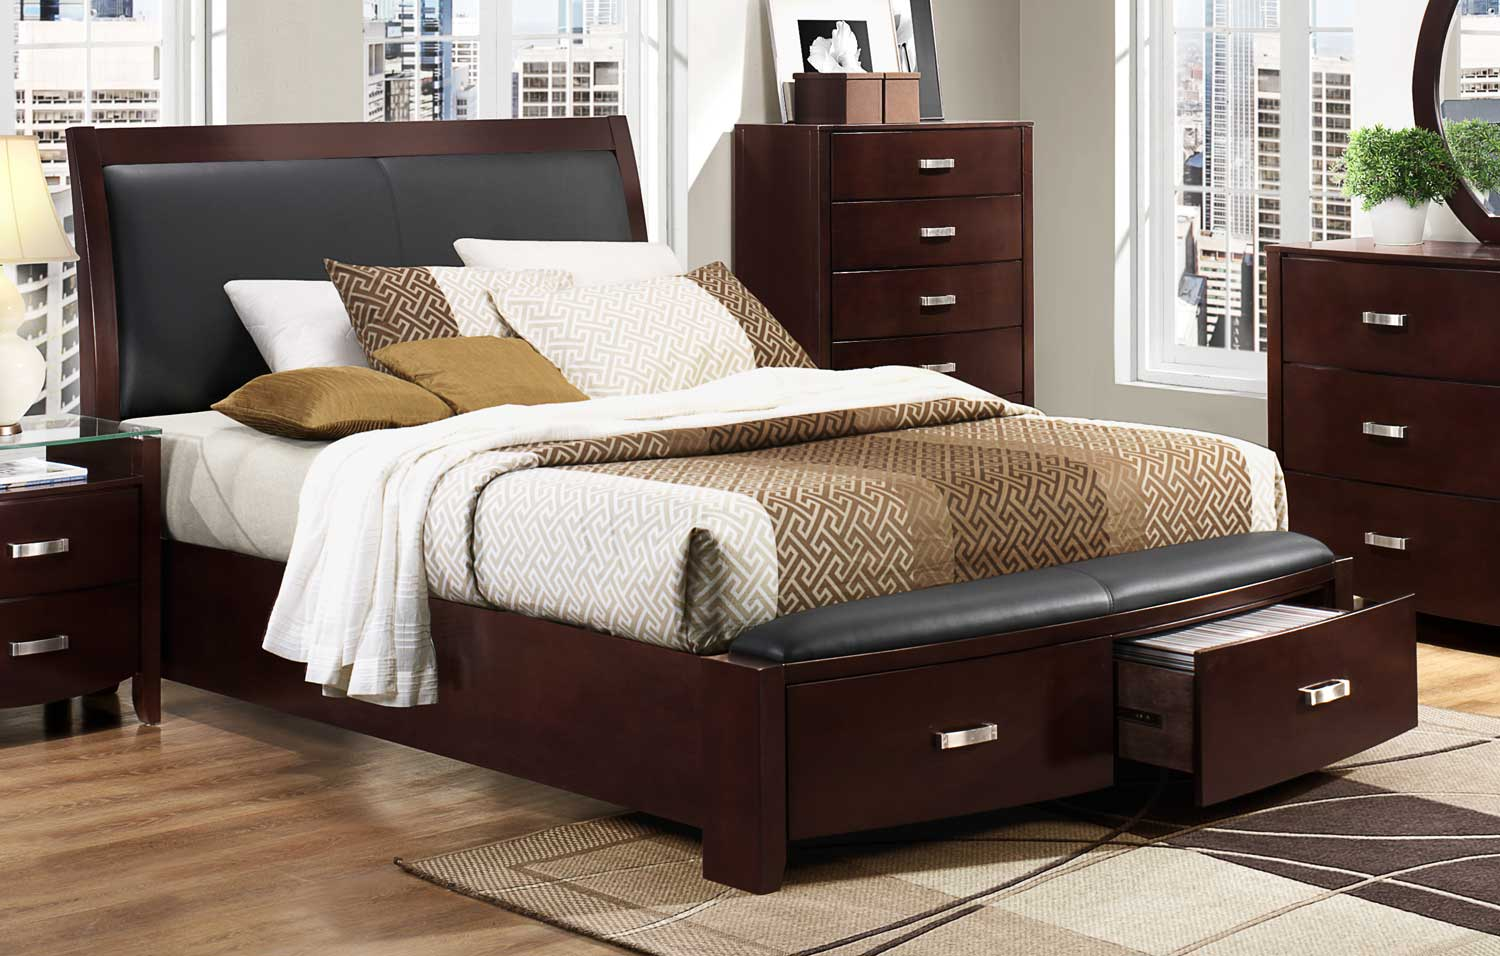 Homelegance Lyric Platform Bed Dark Espresso 1737nc 1 At Homelement Com